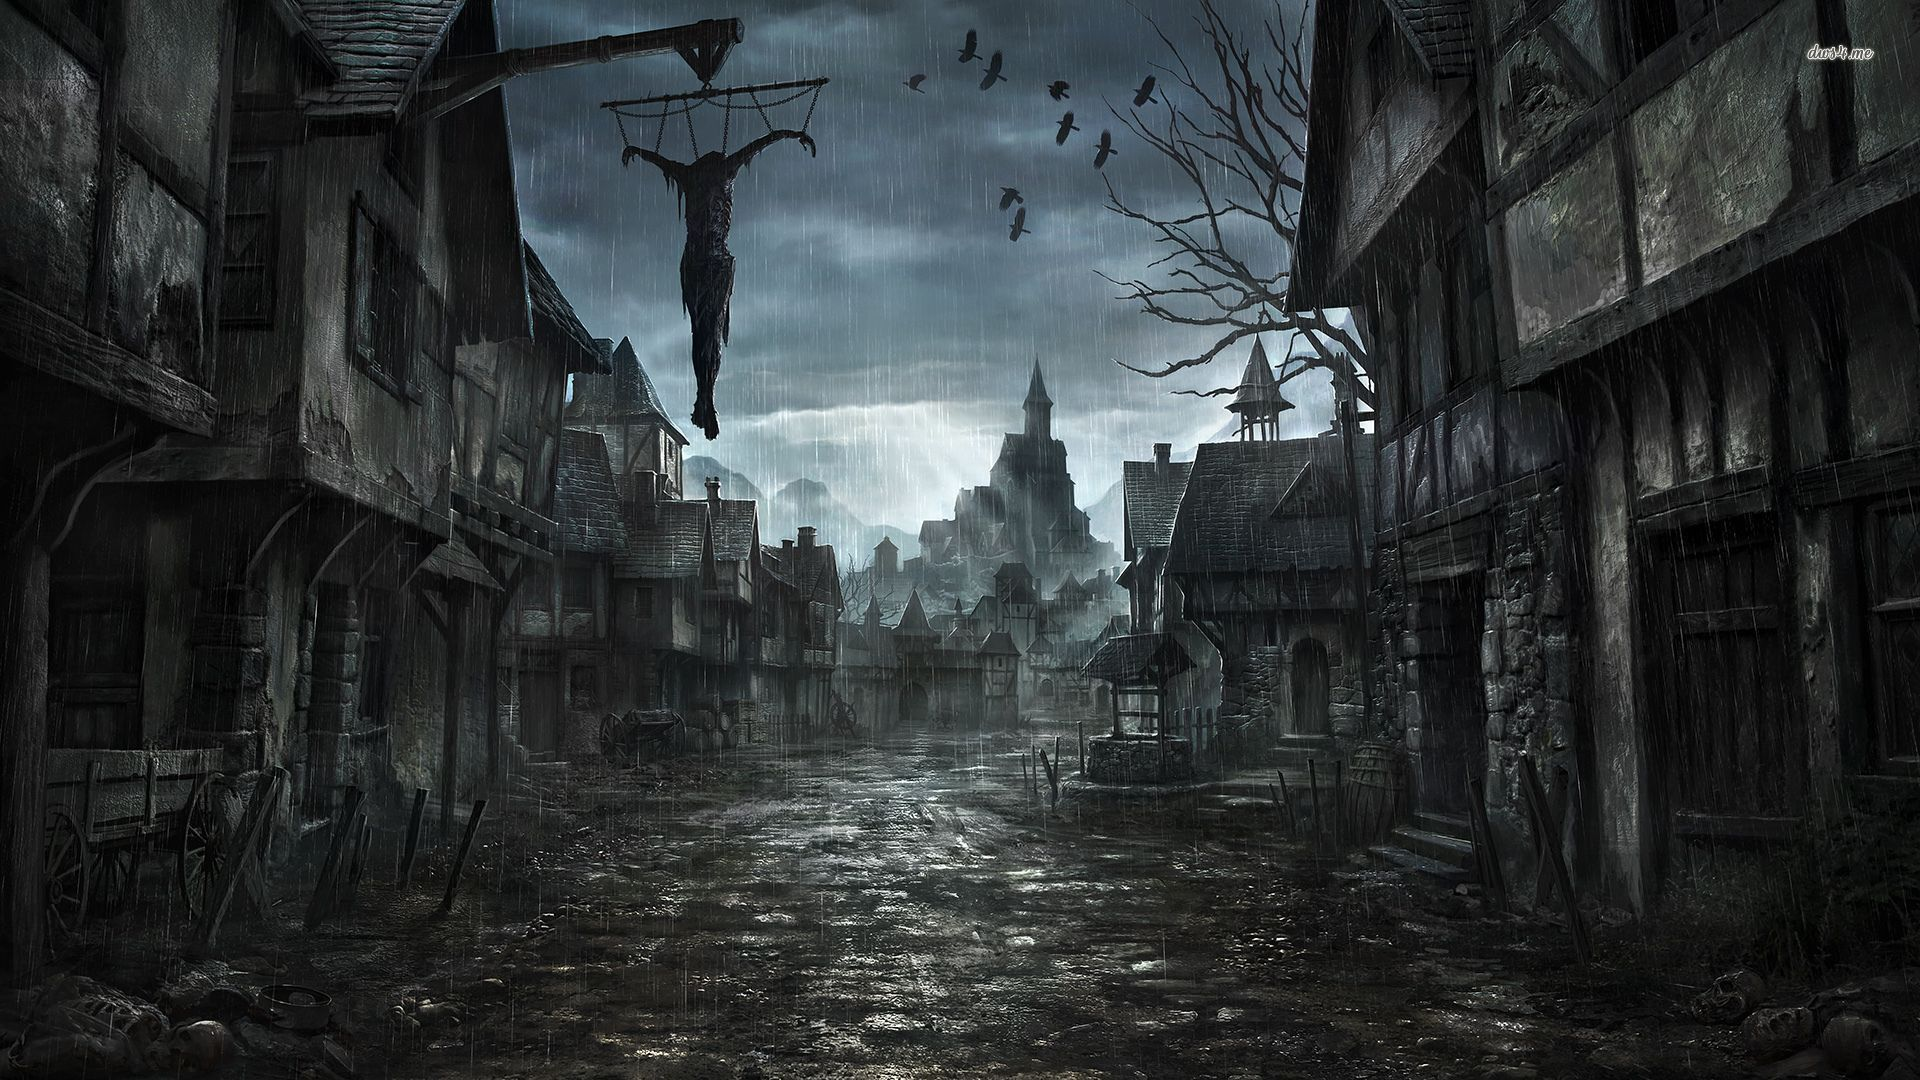 Scary wallpapers HD 1920×1080 Fantasy Images 164 Backgrounds